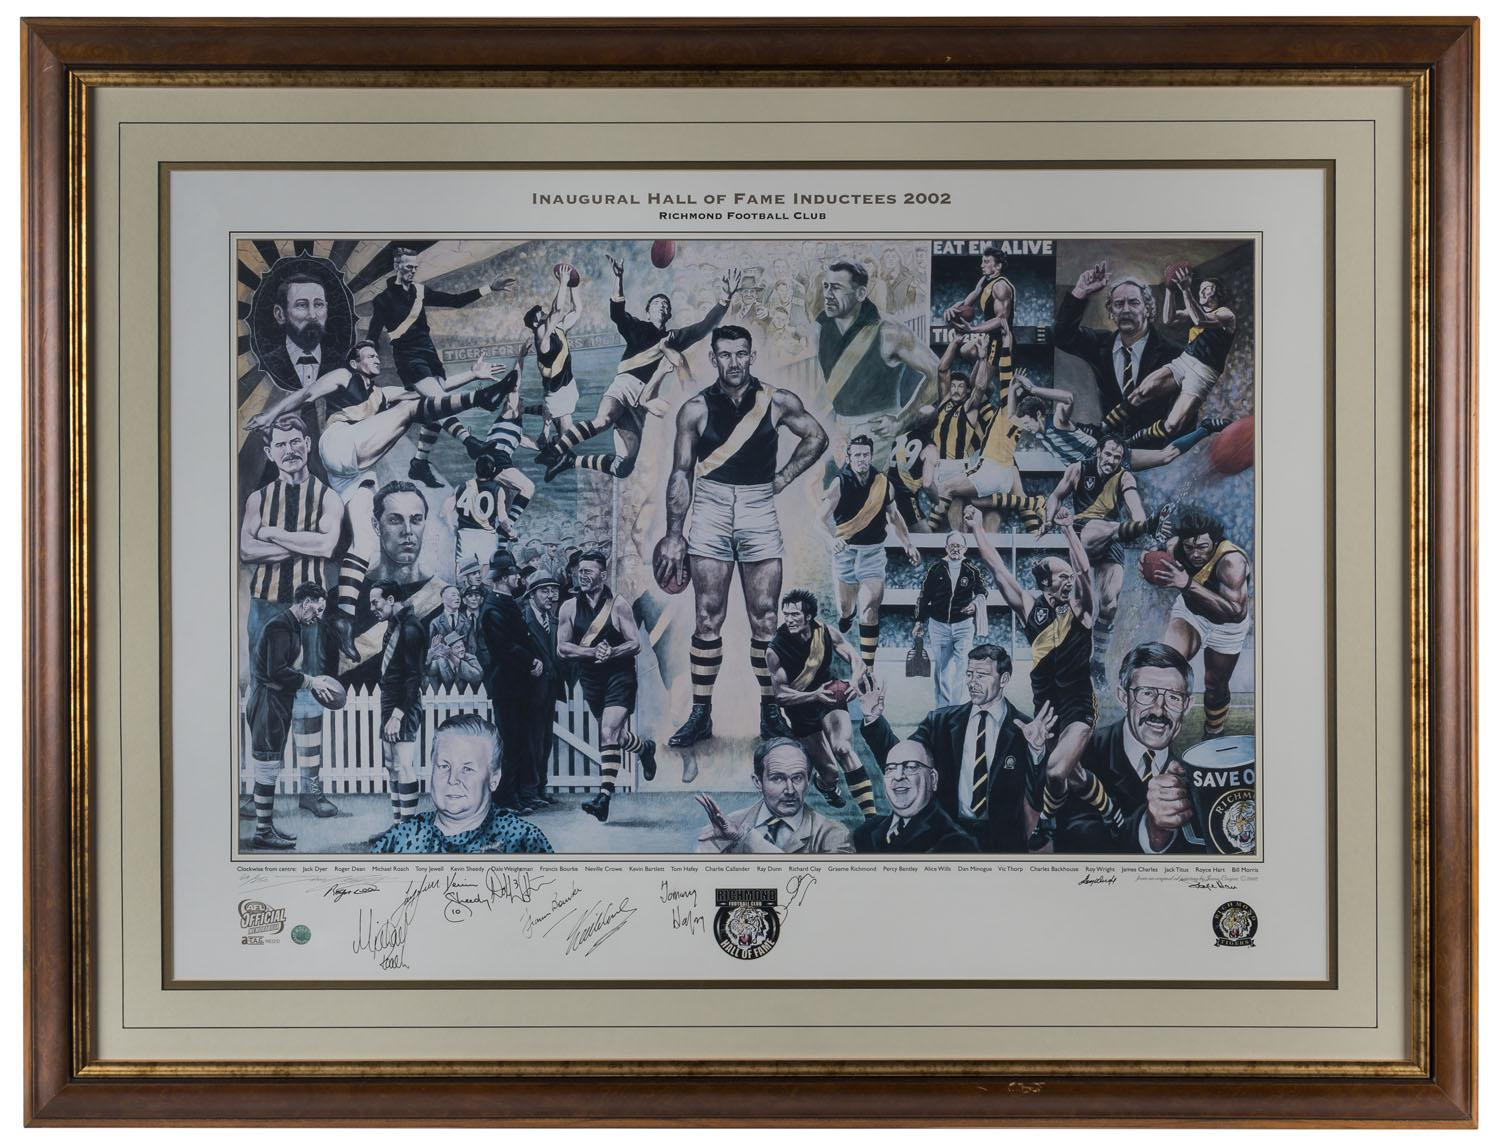 Richmond Tigers Inaugural Hall of Fame 2002 Signed Inductees, Framed - Hafey, Sheedy, Hart